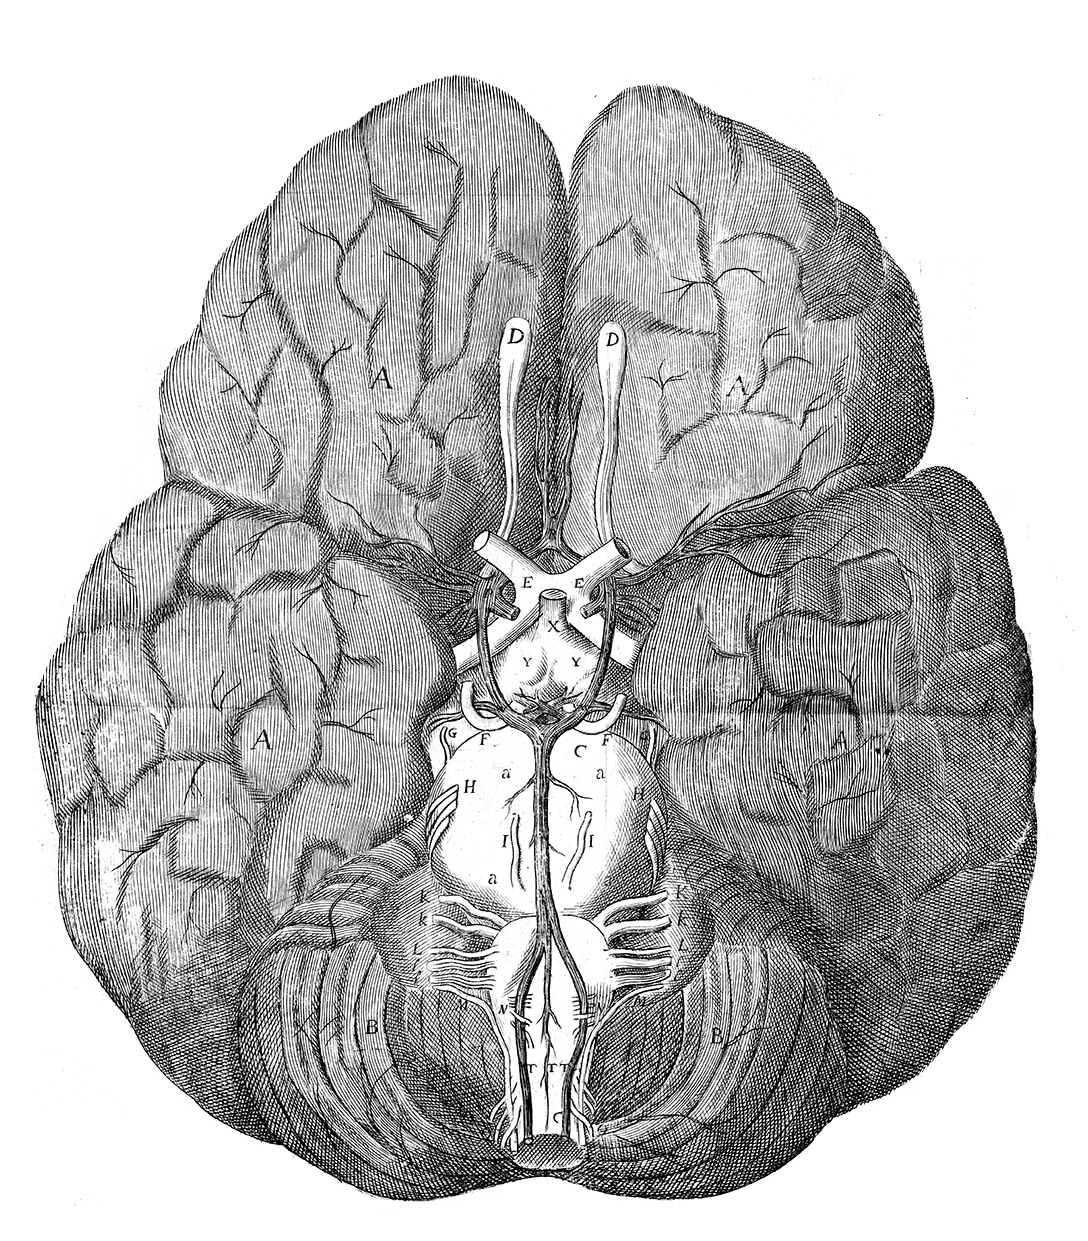 Drawn brains gray's anatomy The of  of of